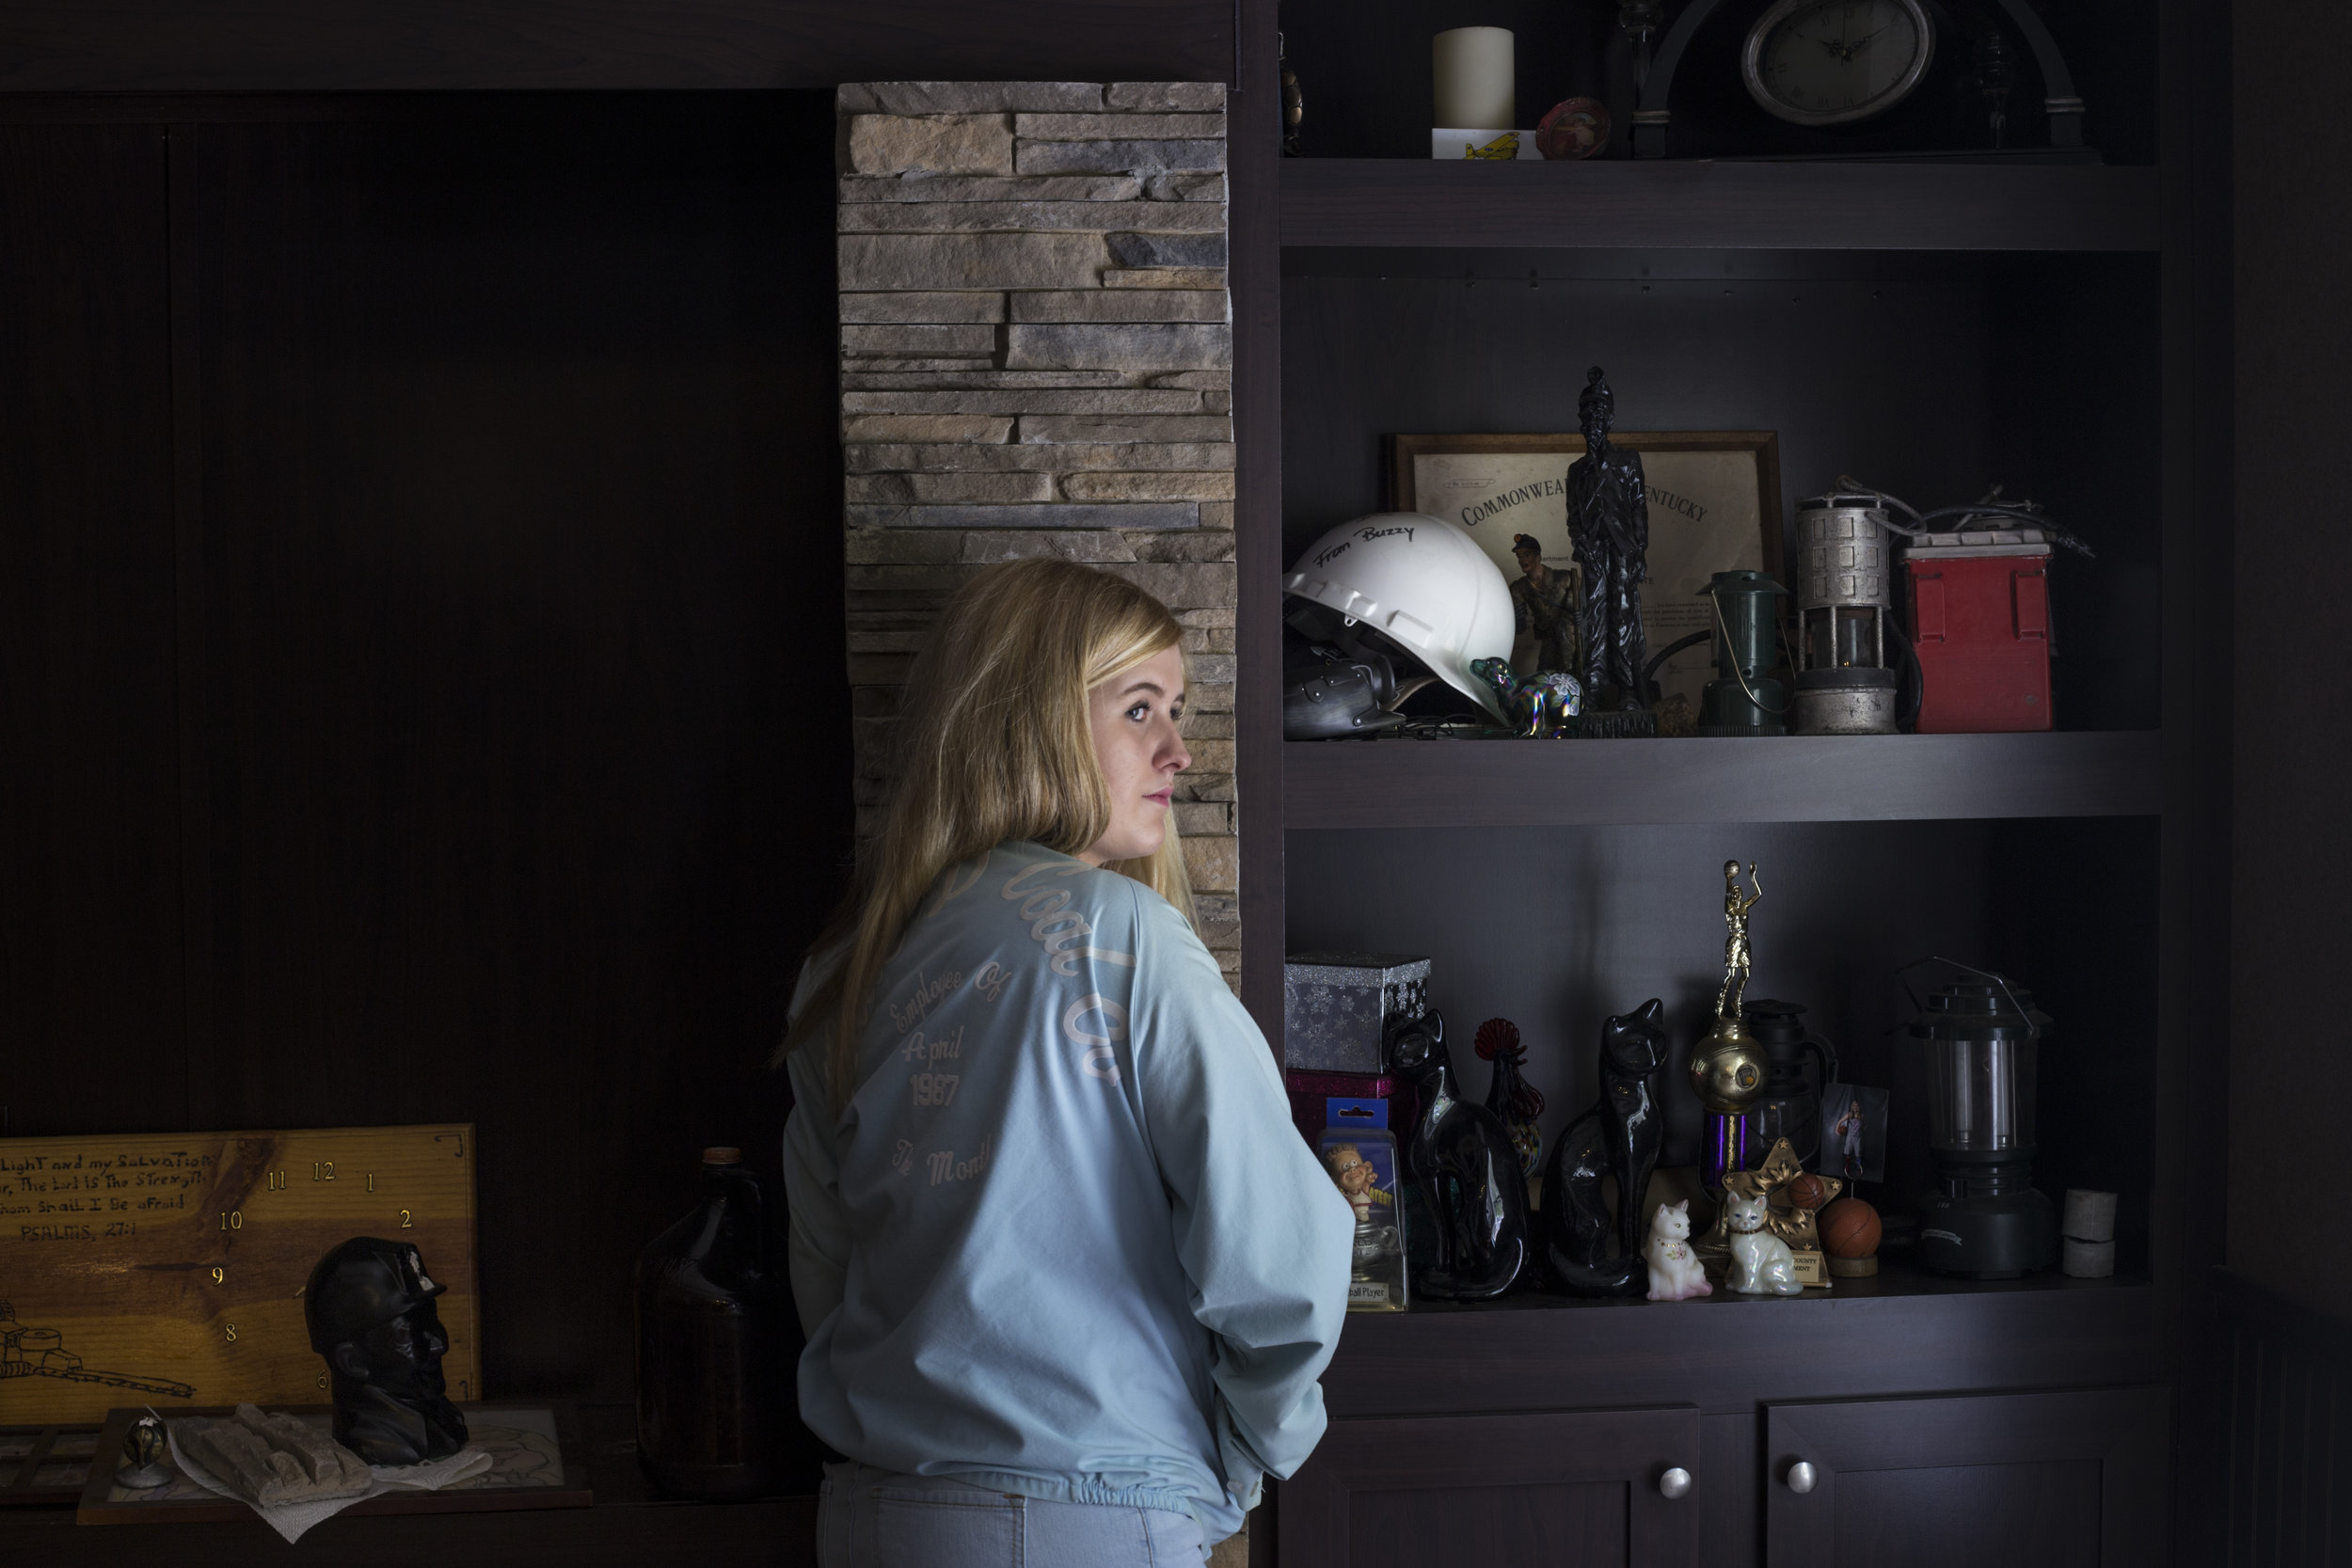 Lizzie Jones, 17, proudly wears her father's employee of the month jacket from his time working at the coal mines nearby a shelf of her family's relics of the coal industry at her home in Eastern Ky., on Sunday, September 24, 2017. Jones' father passed away from black lung in 2014. In January of 2017 her mother, who also worked in the coal mining industry, passed away. Jones said she has plans on moving into the home they once shared and has developed a complex relationship with the coal industry that both built her community stole her parent's life.